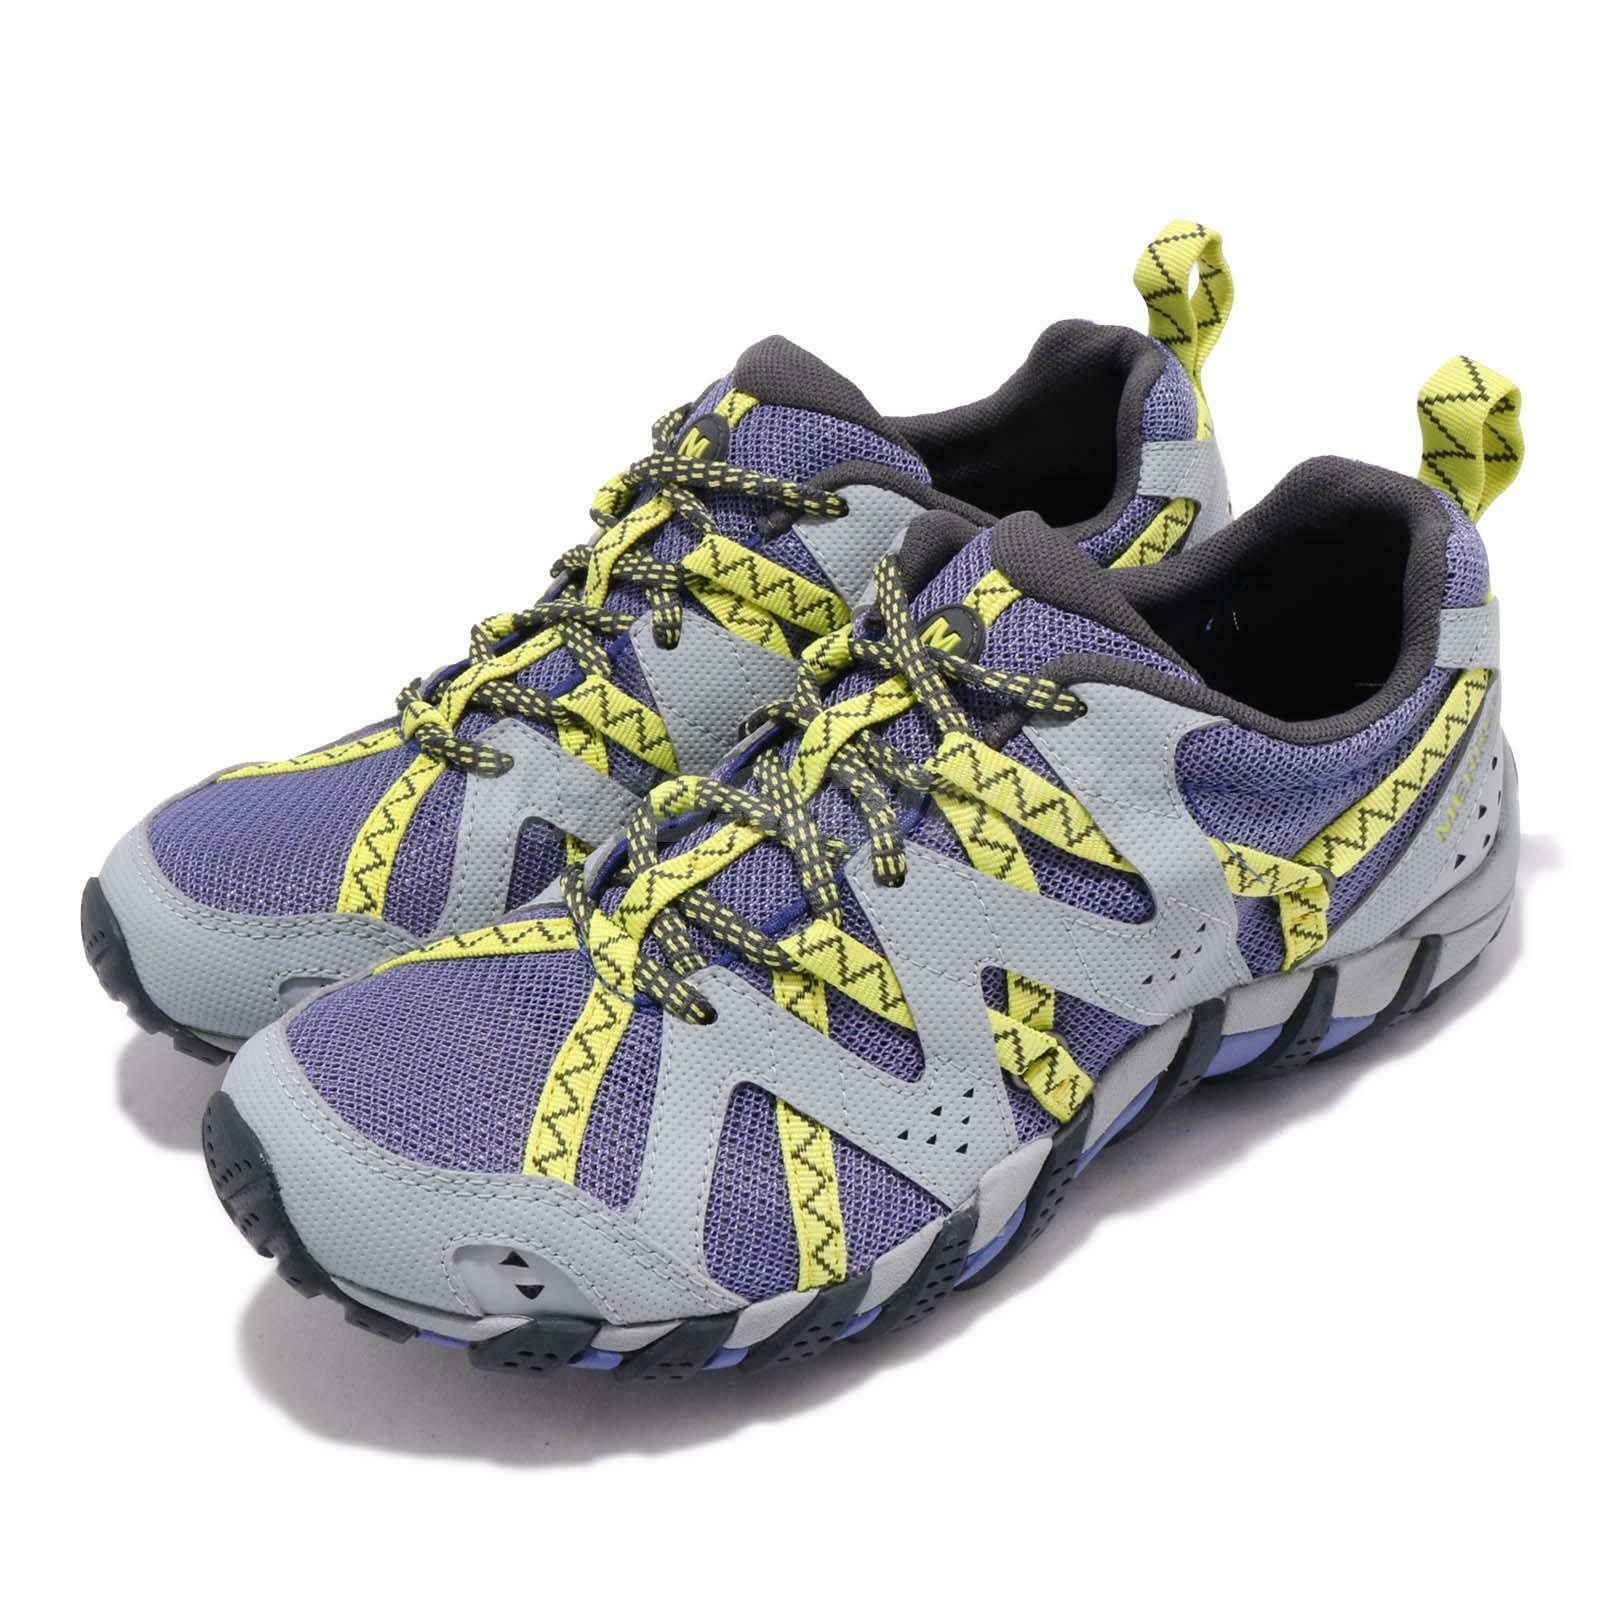 Merrell Waterpro Maipo 2 Purple  Yellow Grey Women Outdoors Water shoes J84764  limited edition